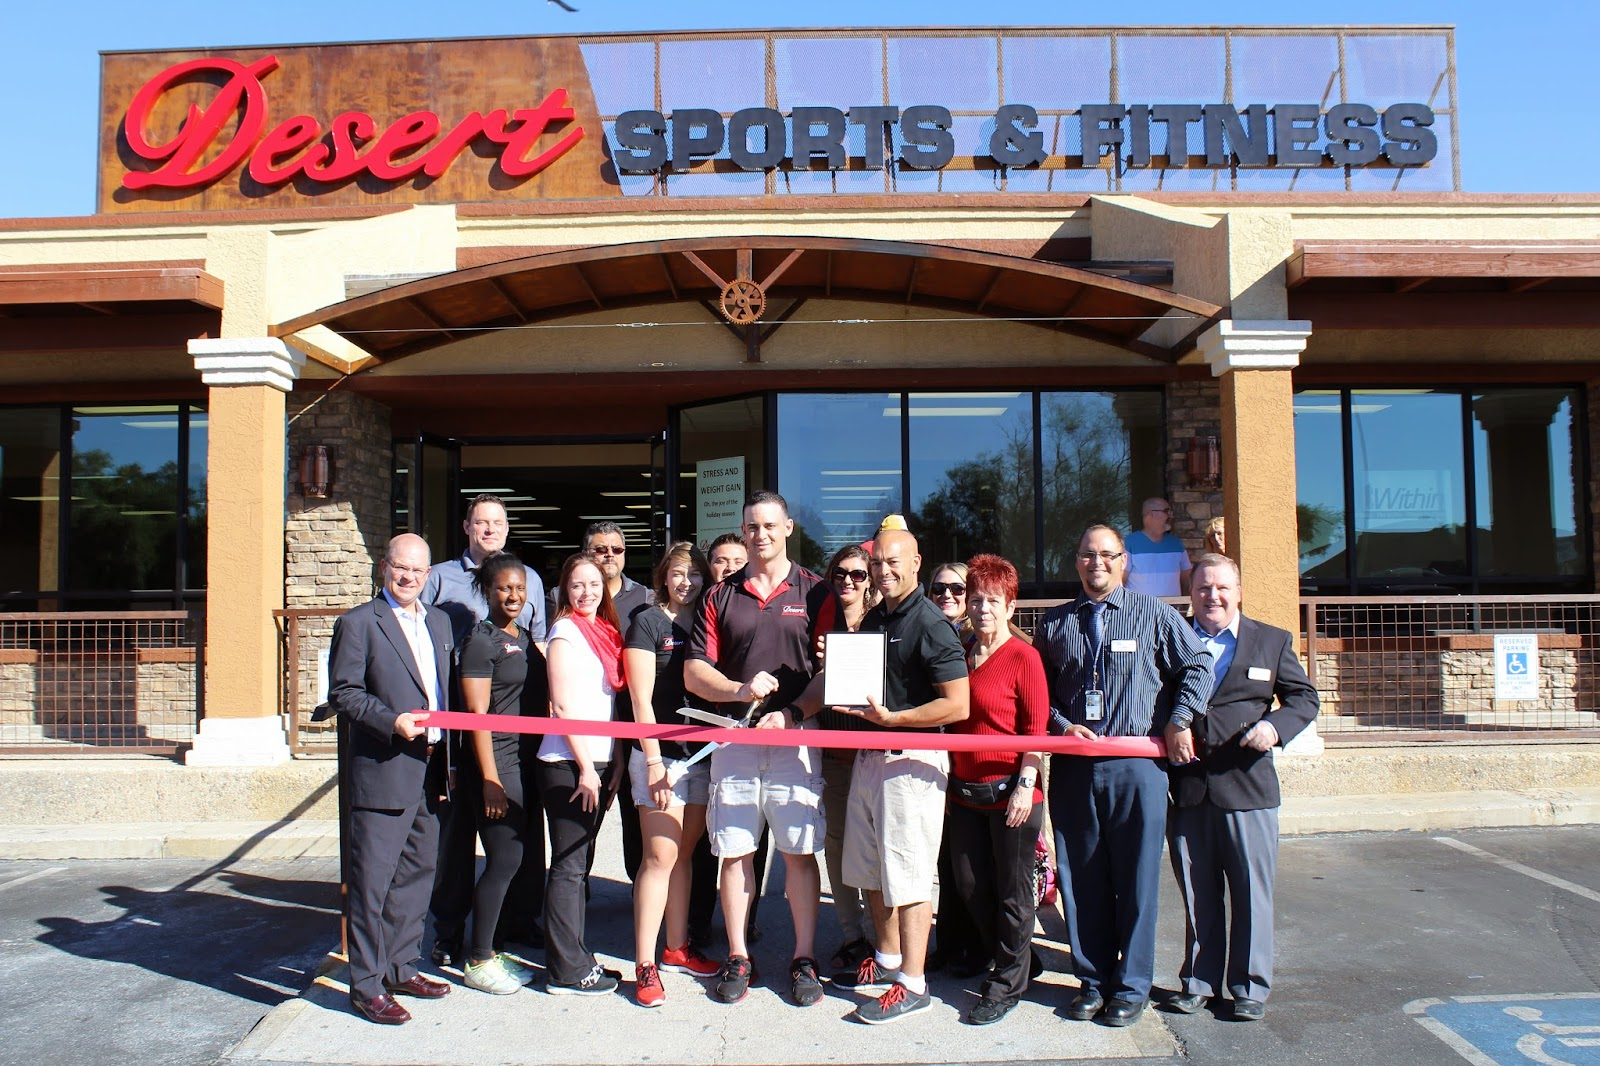 Desert Sports and Fitness celebrates the completion of renovations to their East side location.  As Tucson's complete fitness center we offer individualized programs to help you achieve your health and fitness goals.